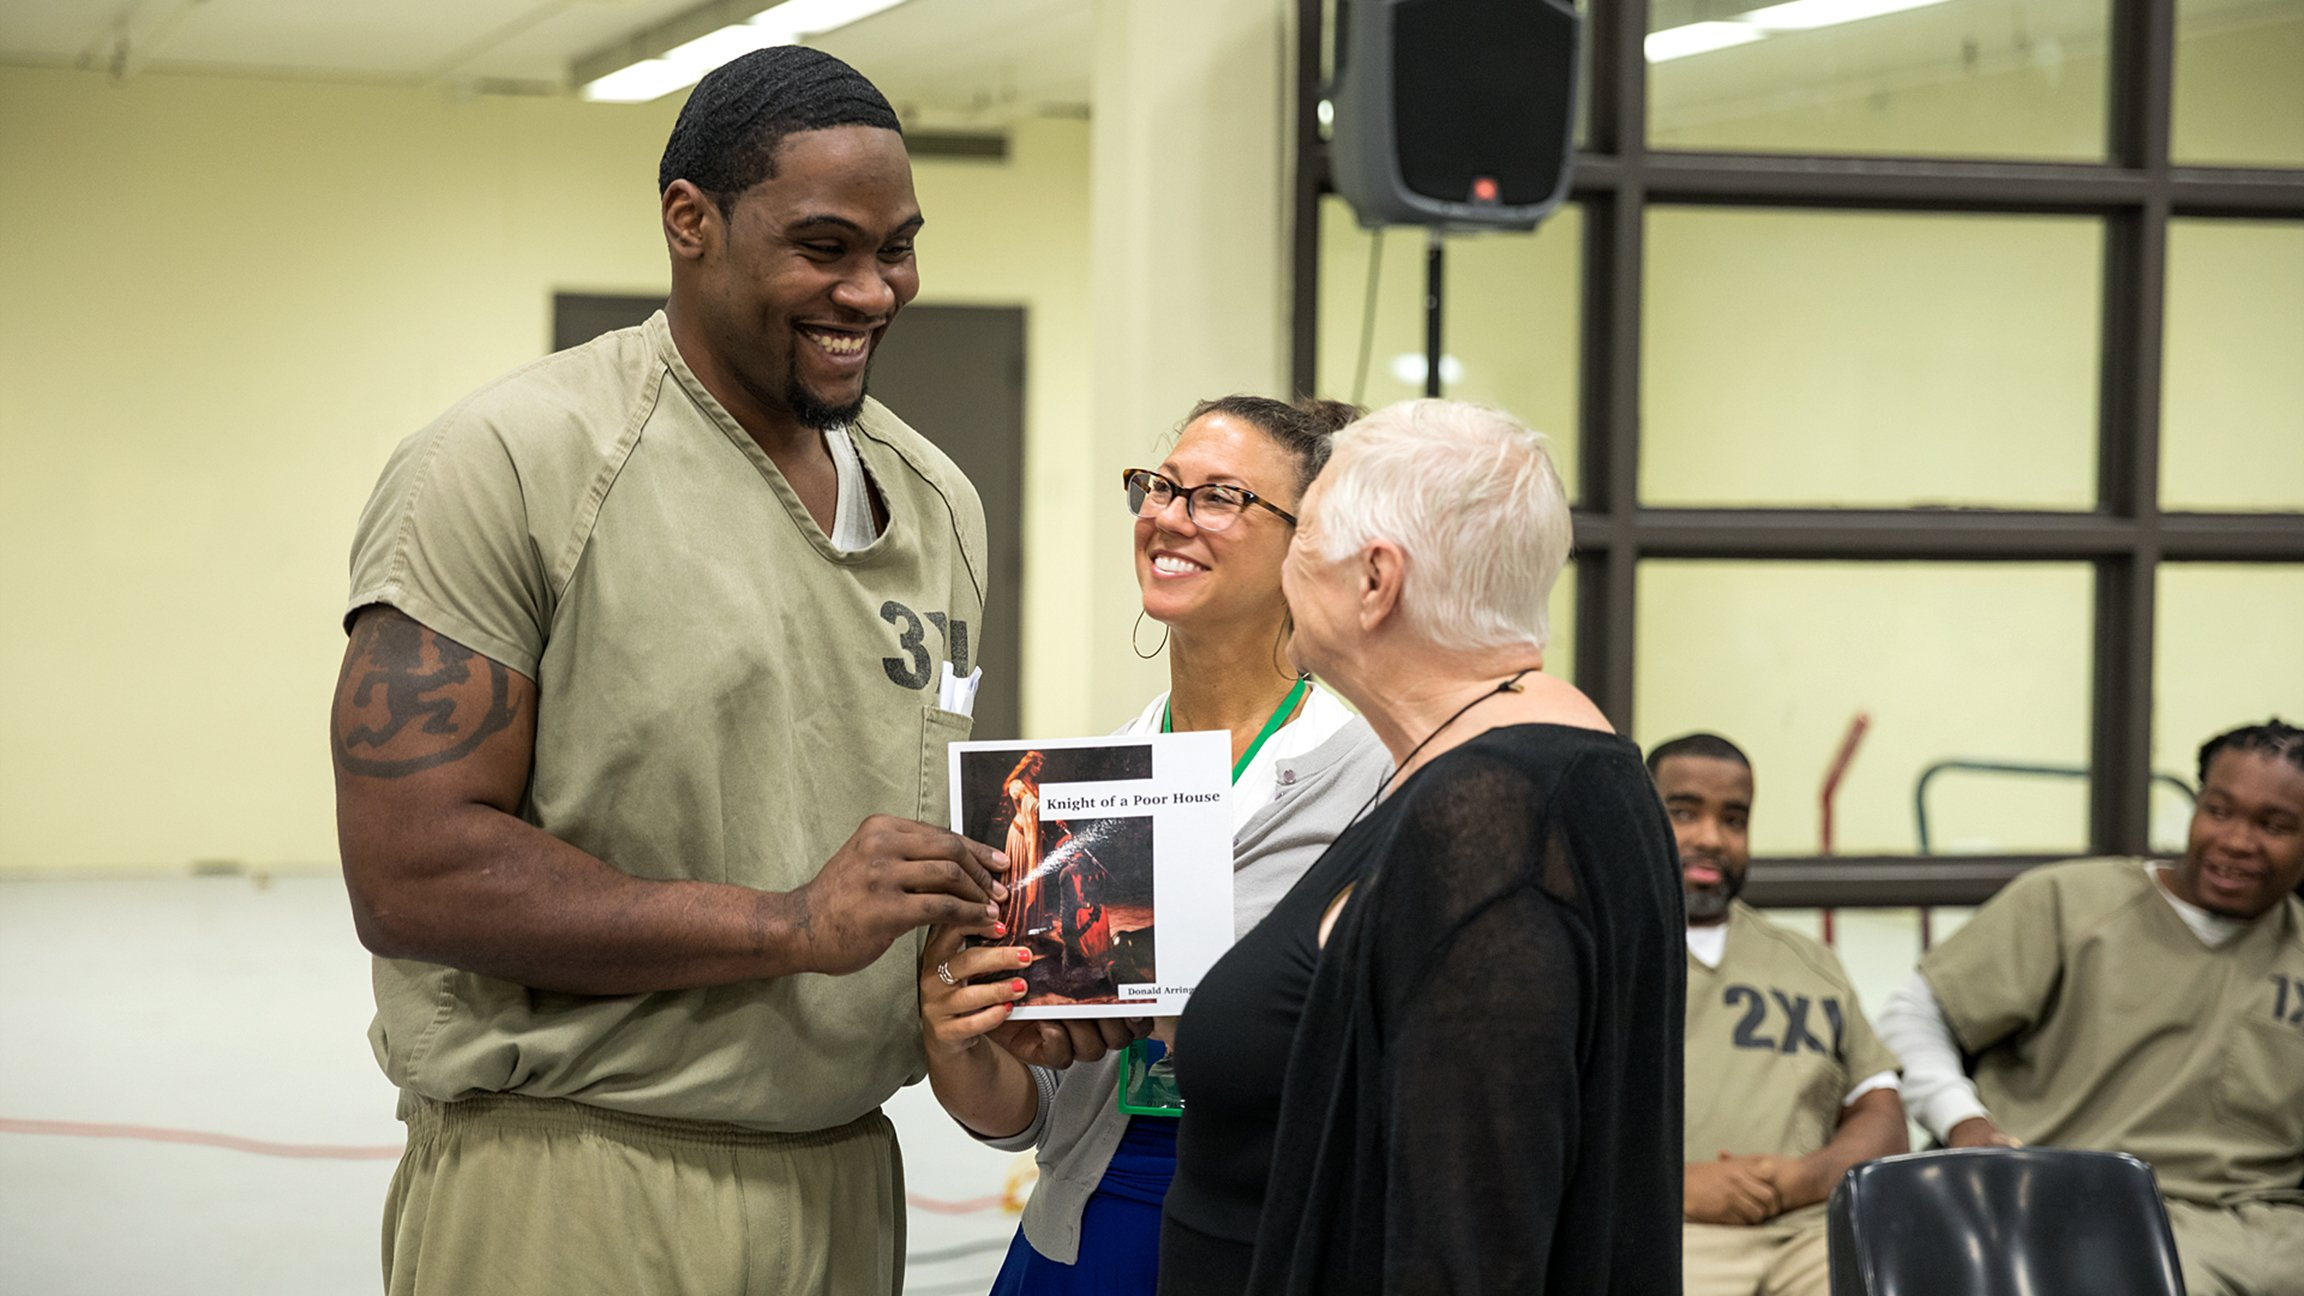 Writing Memoirs at Cook County Jail Helps Detainees Earn New